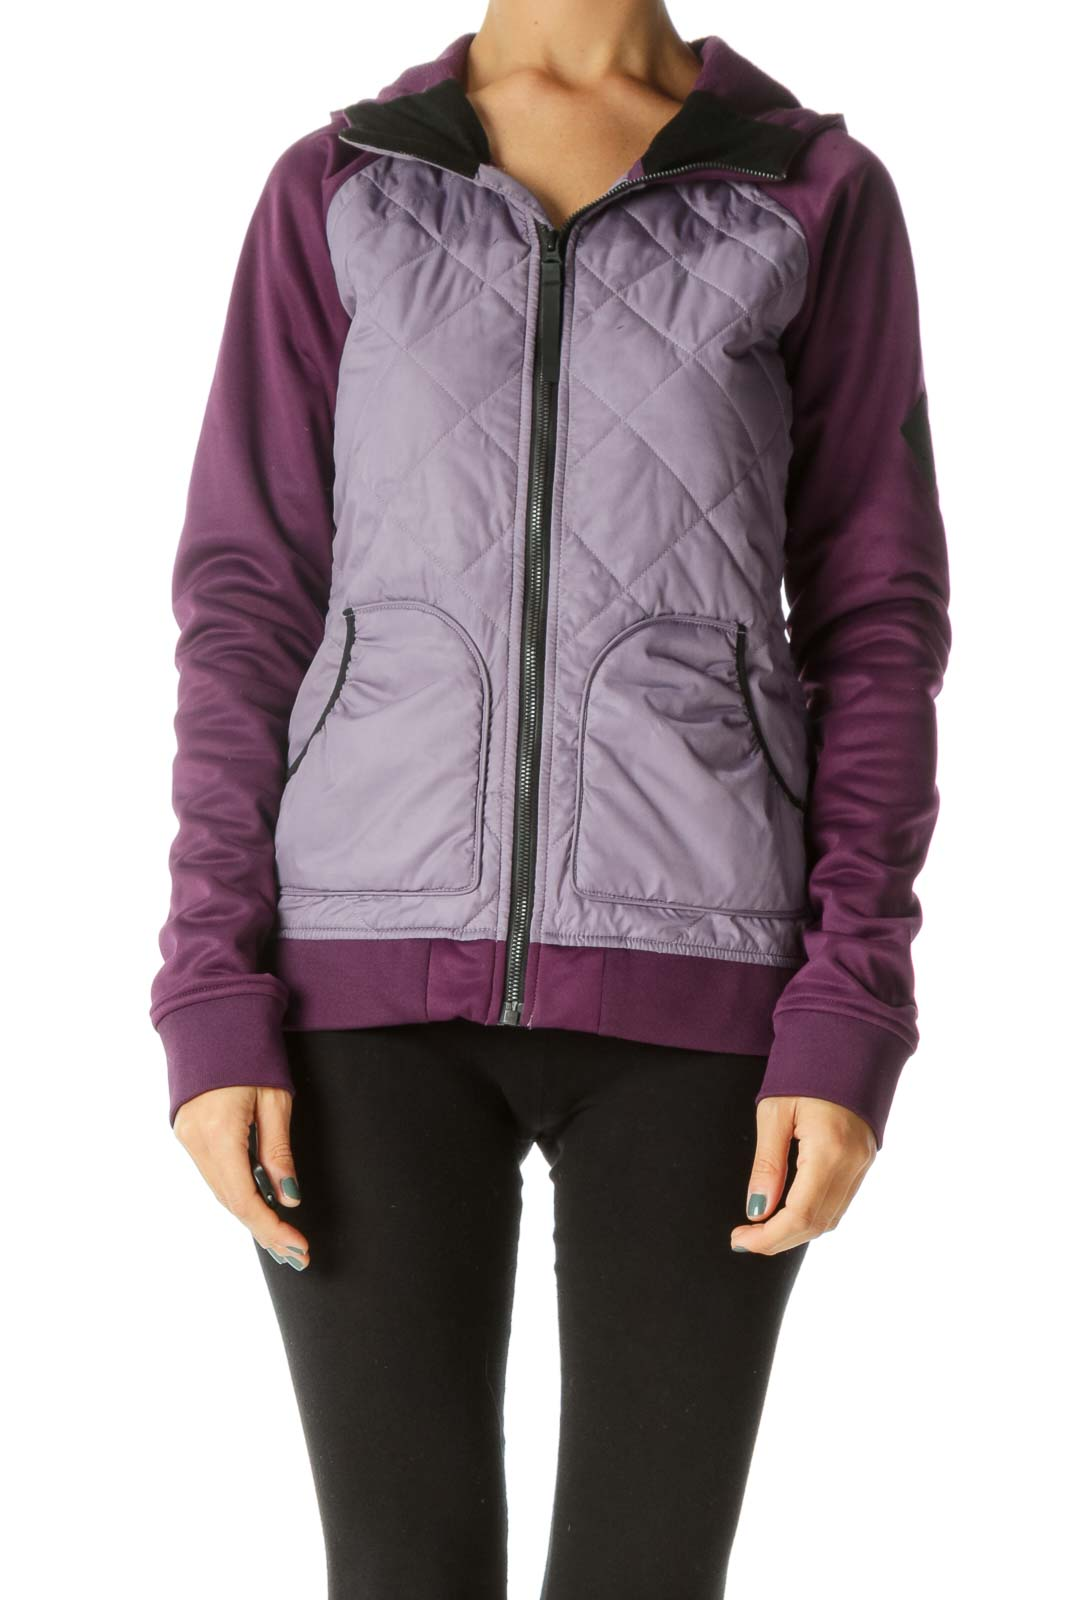 Two-Tone Purple Quilted Stretch Hooded Elastic Pockets Active Jacker